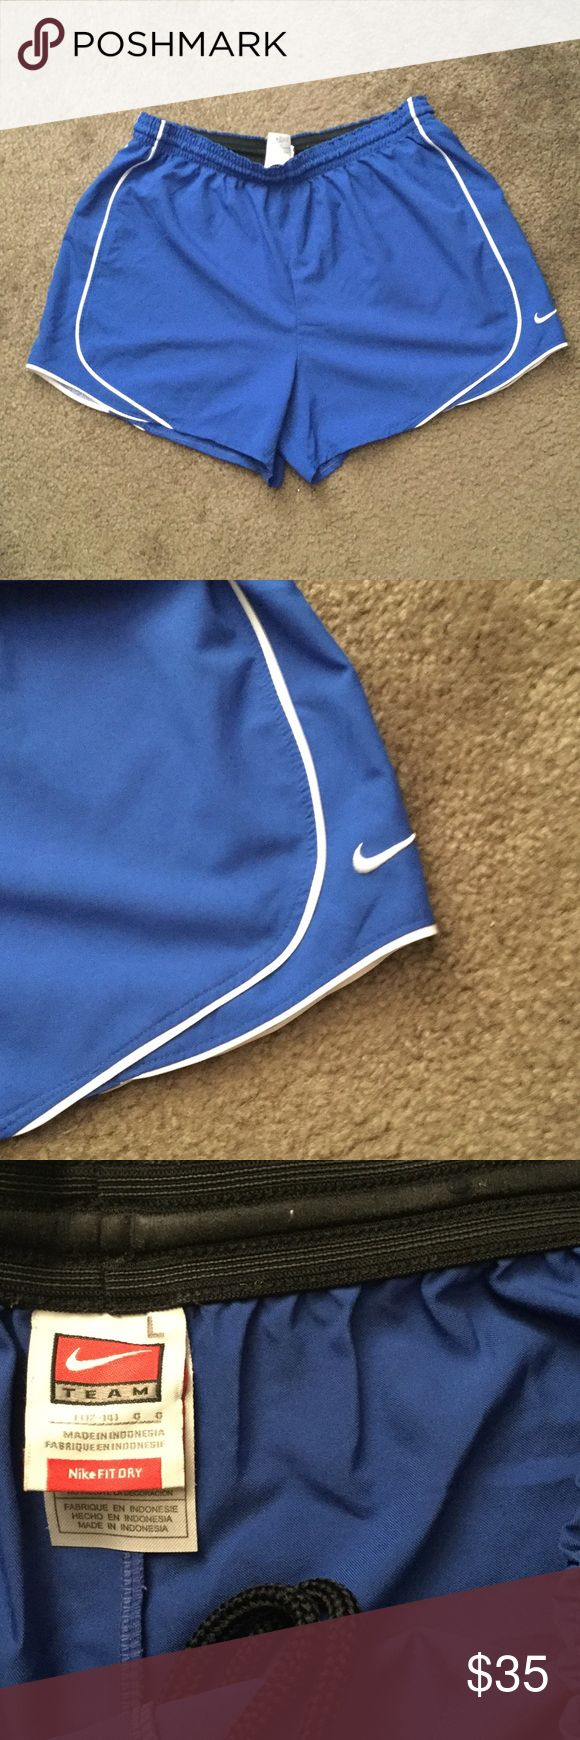 Nike soccer shorts Royal blue and white. Excellent condition. Drawstring in order to help them stay put! Nike Shorts